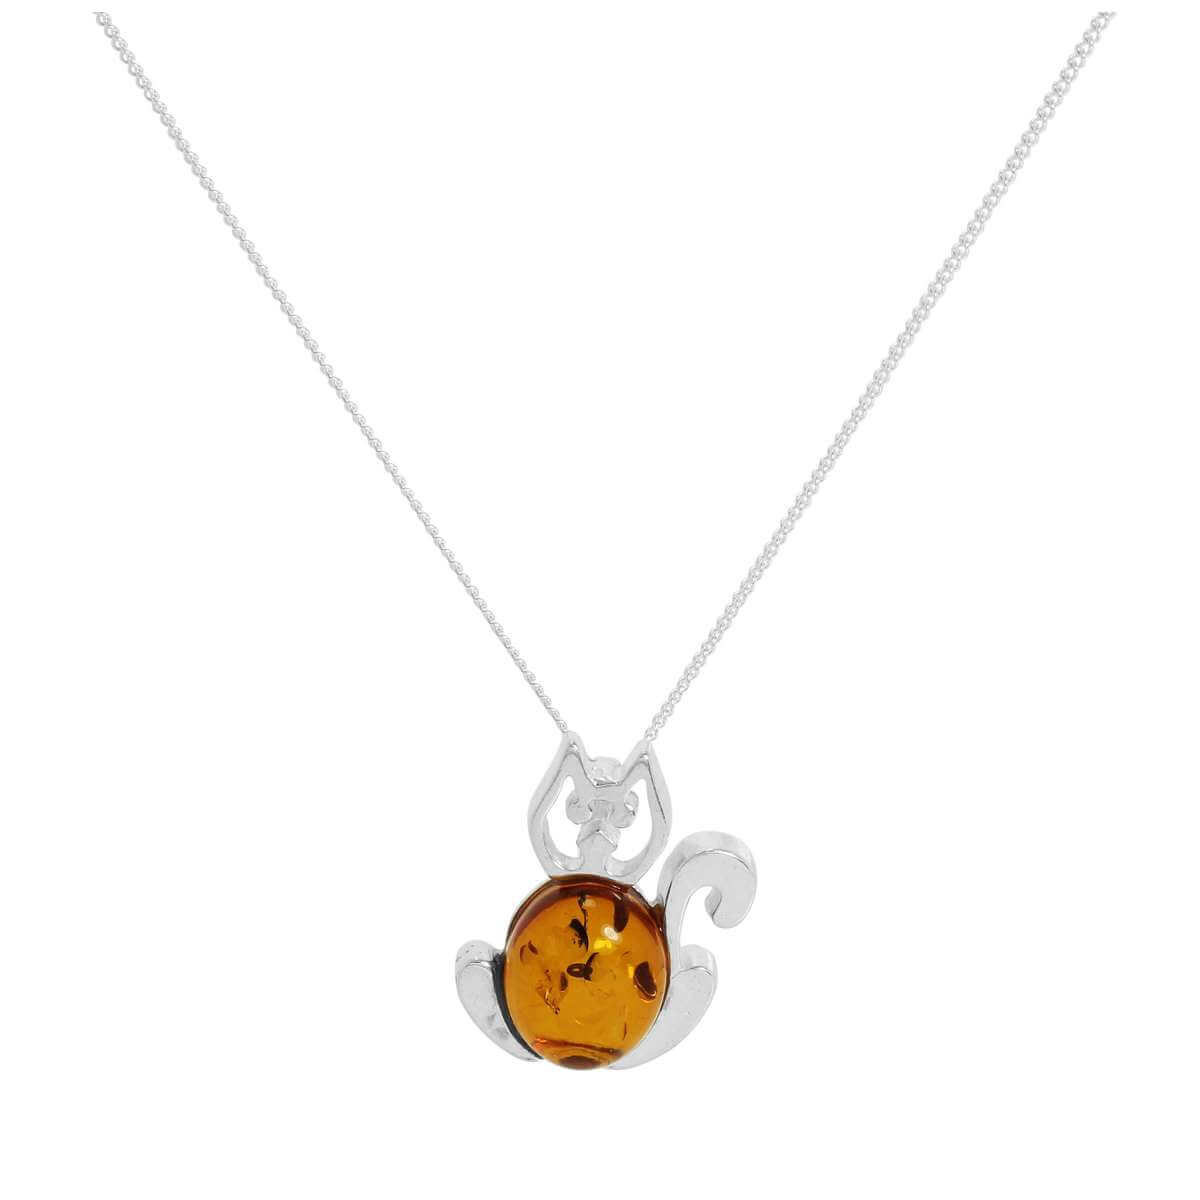 Sterling Silver & Baltic Amber Cat Outline Necklace 16-18 Inch Chain